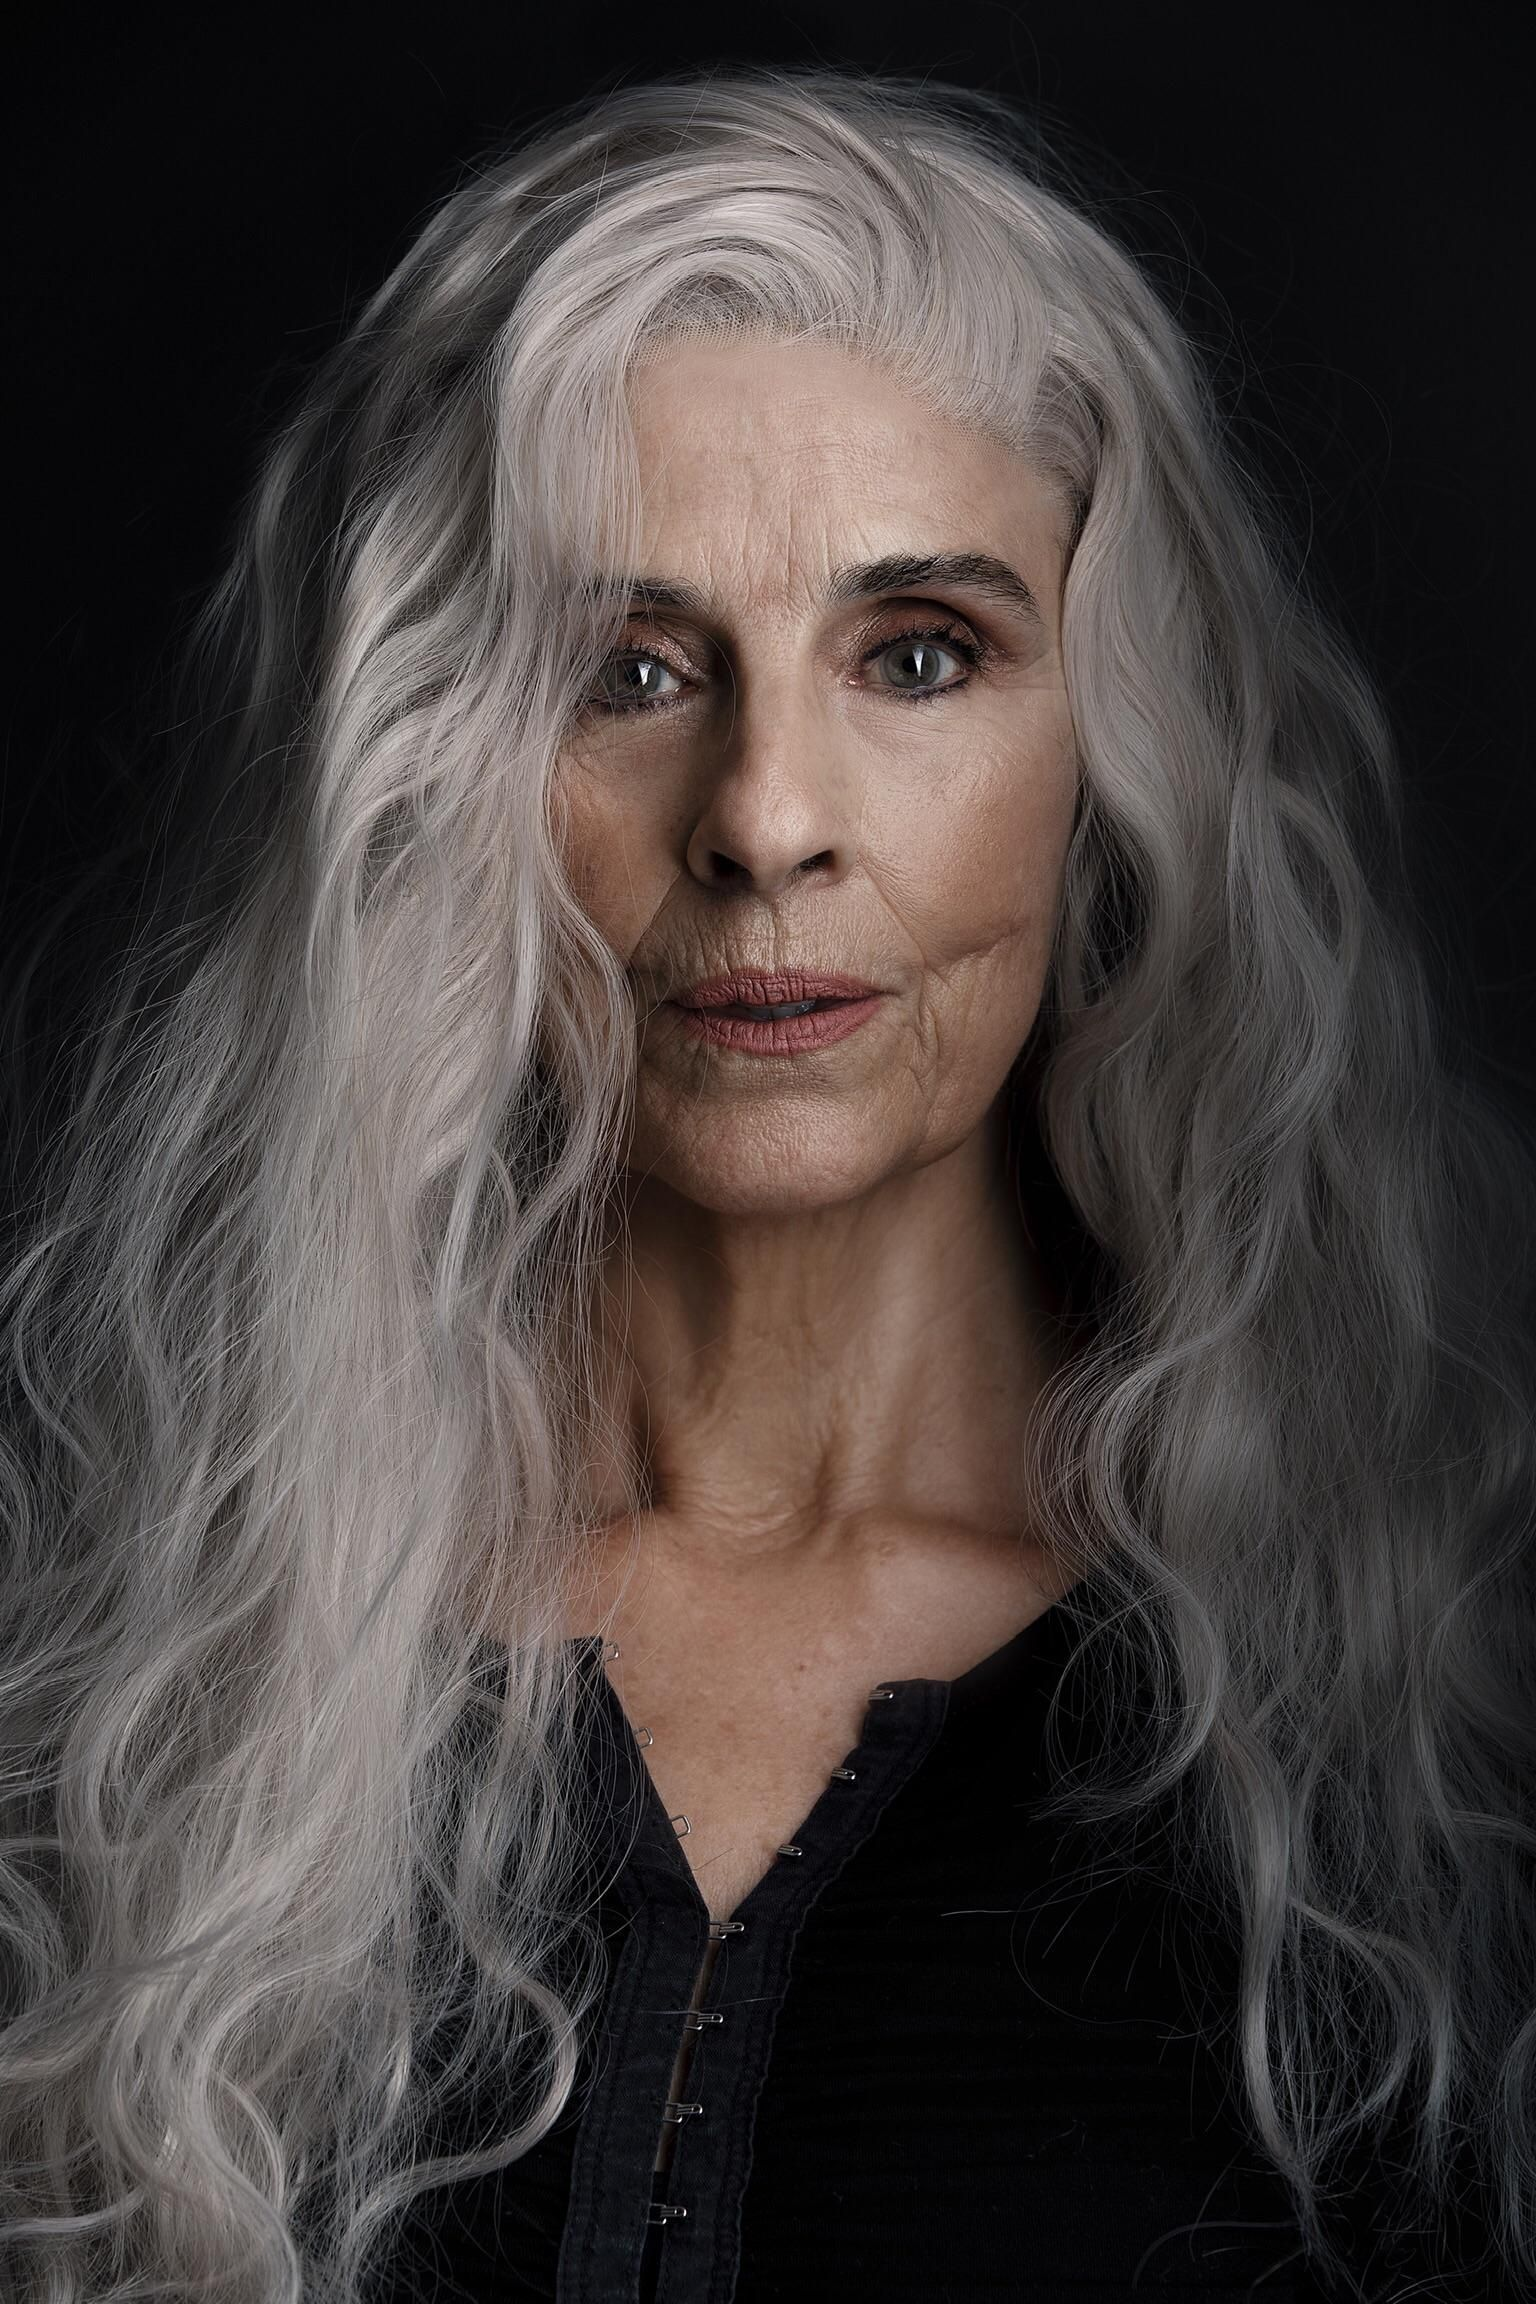 I Took A Photo Of An Older Lady She S An Aspiring Actress And I Think She S Pretty Beautiful Long Hair Styles Silver Haired Beauties Long Gray Hair